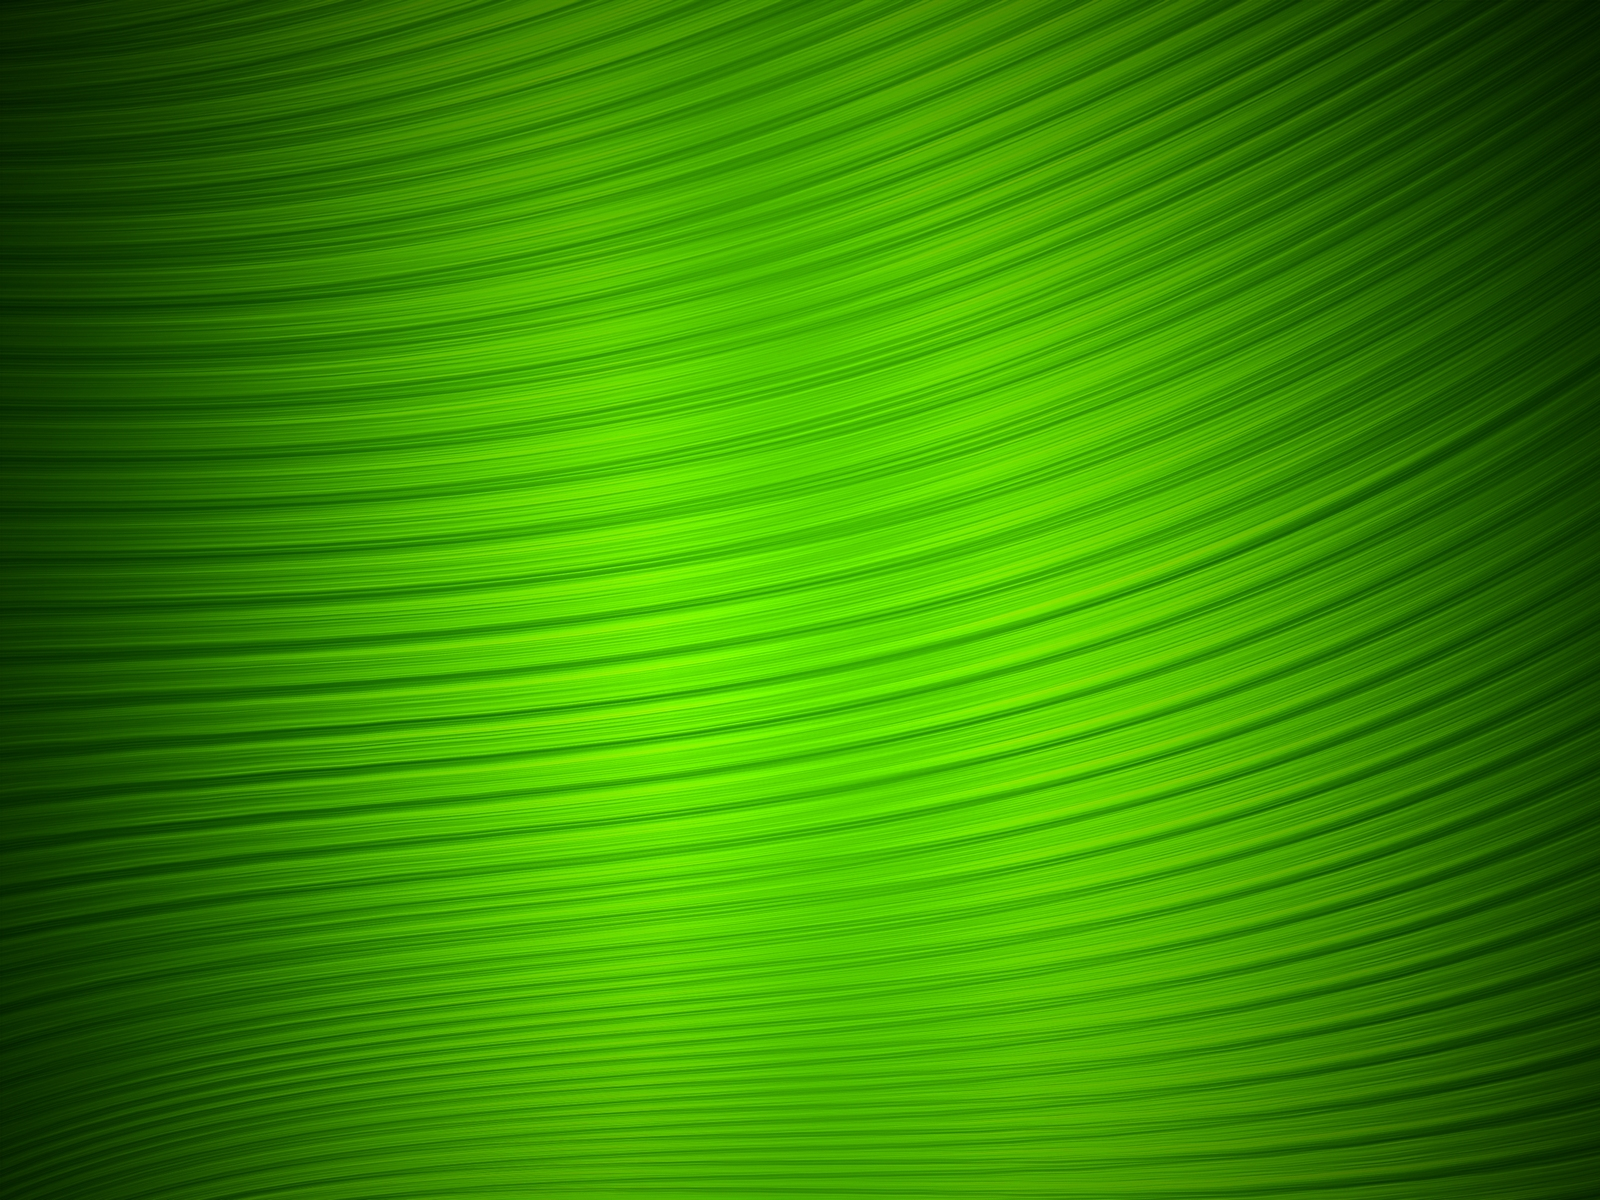 ... Green Wallpaper 6 ...